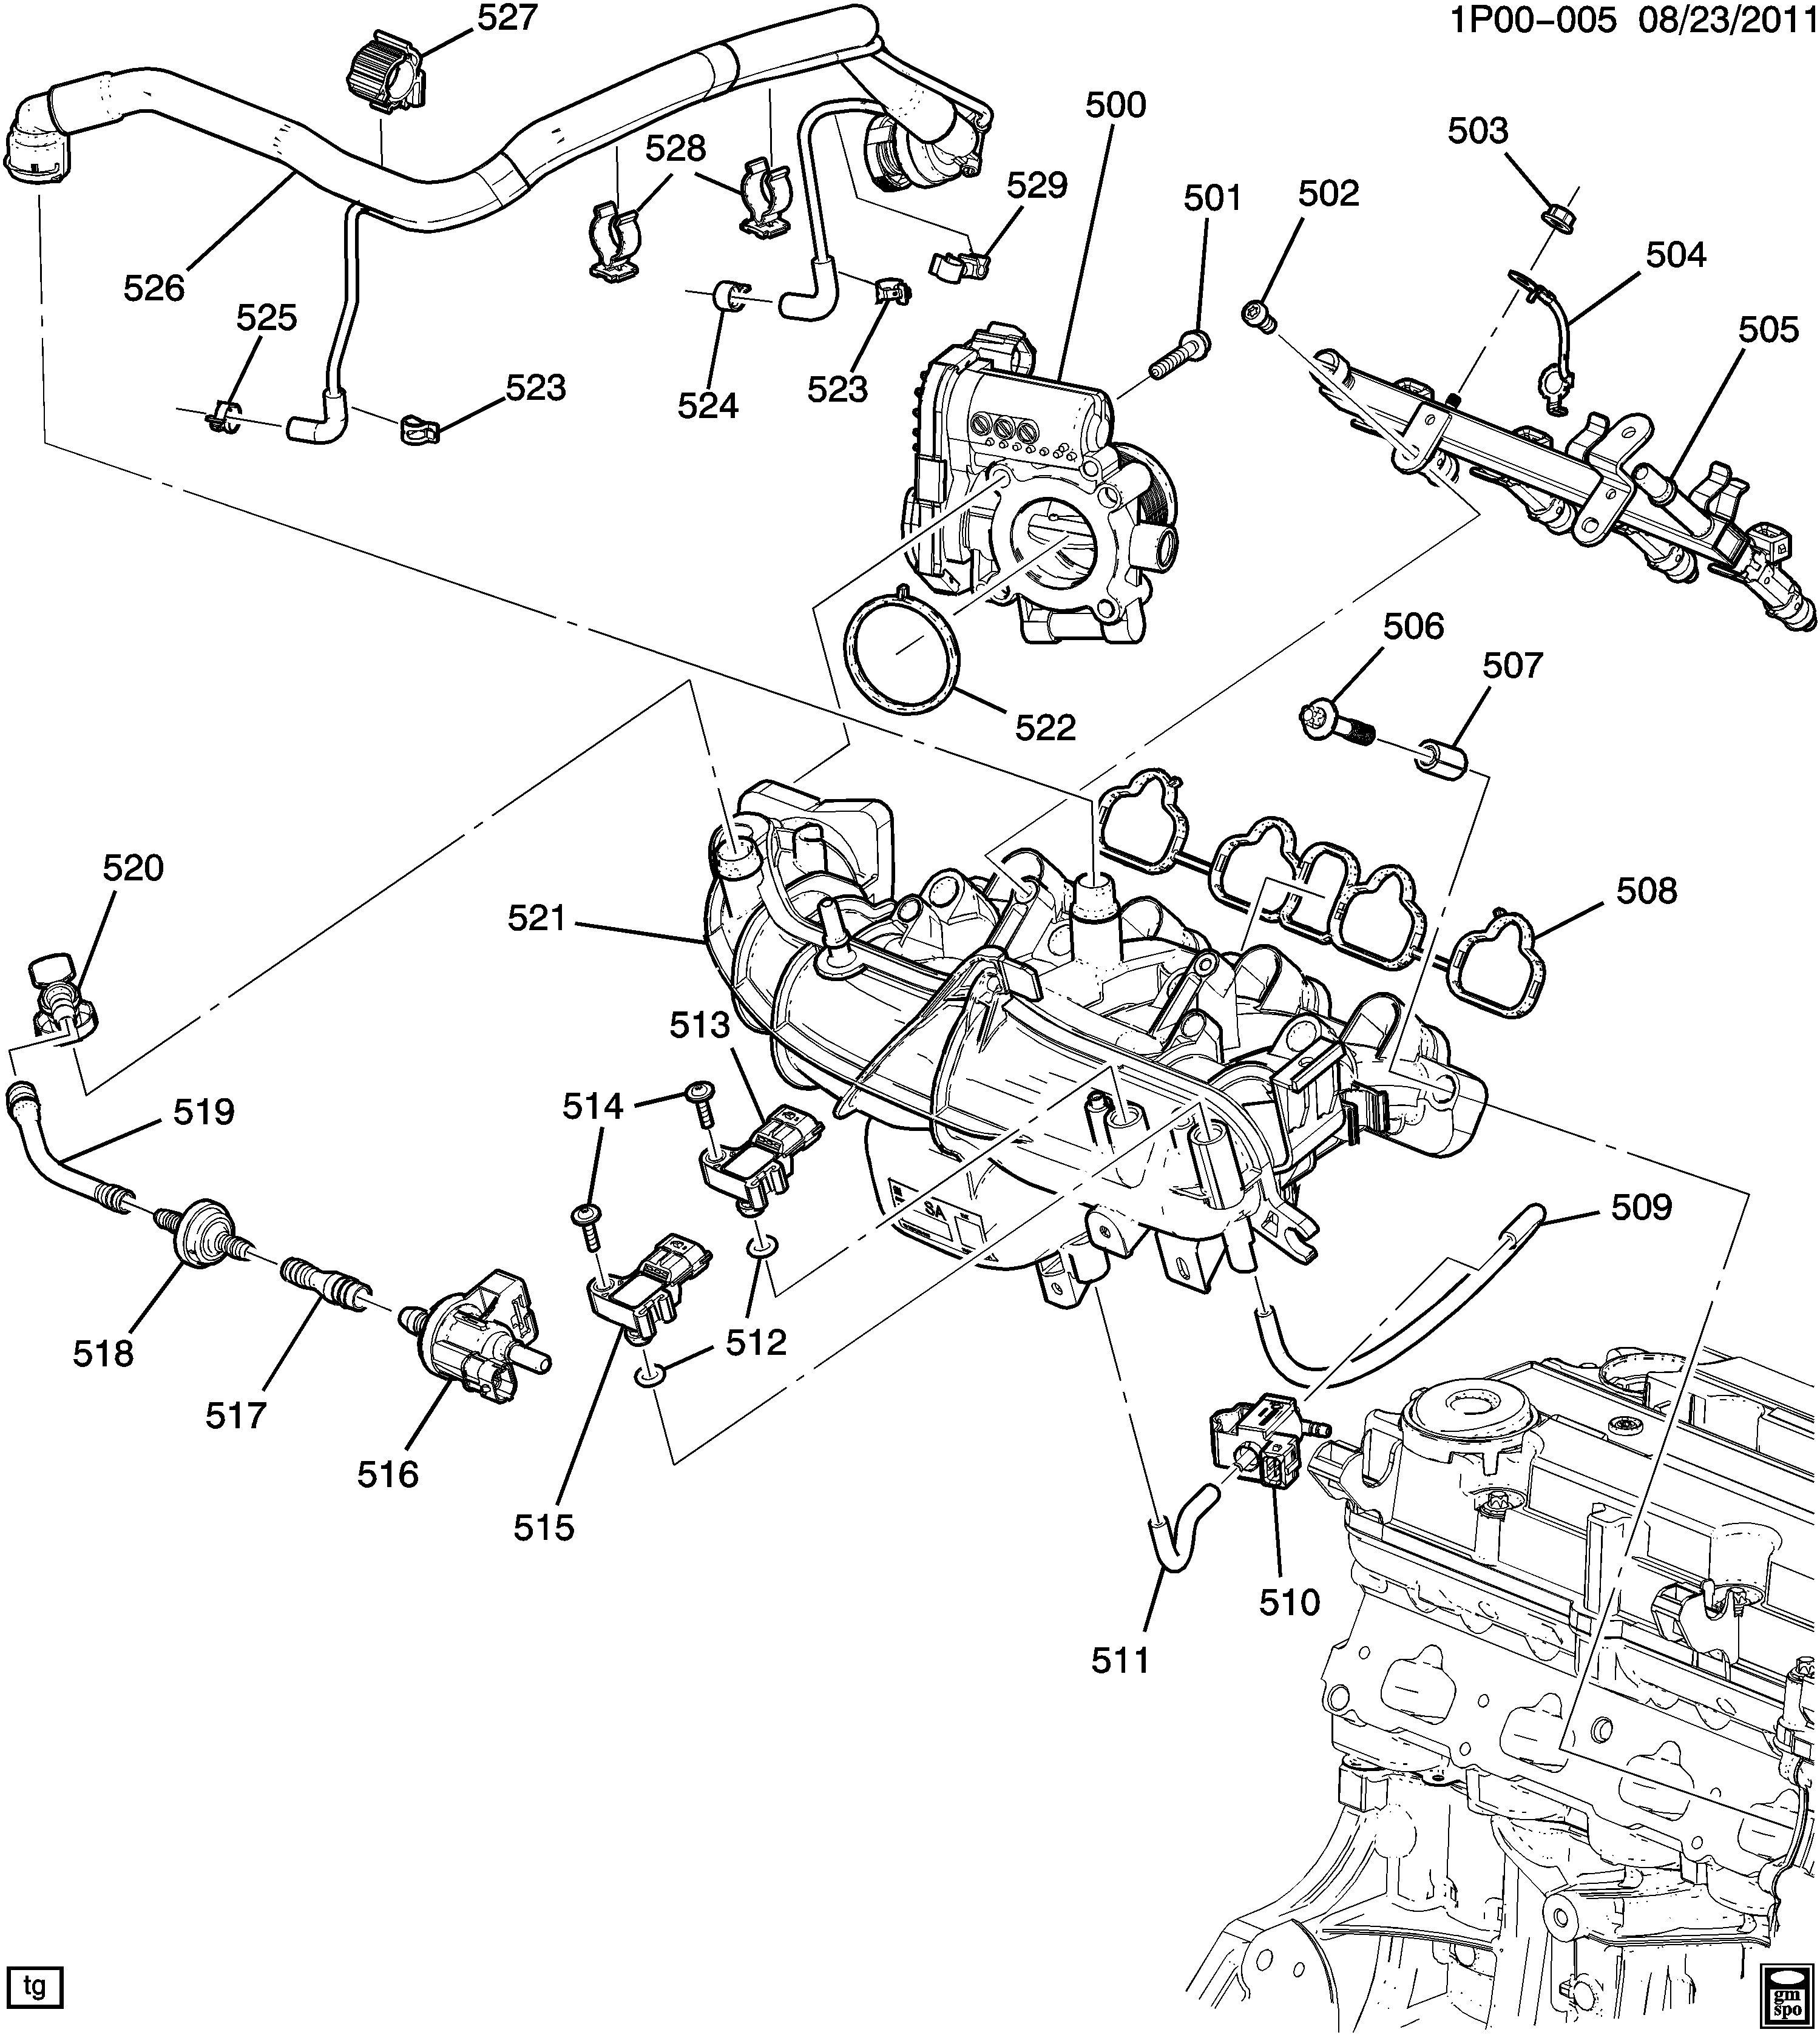 [DIAGRAM] 2014 Chevy Cruze Engine Diagram FULL Version HD